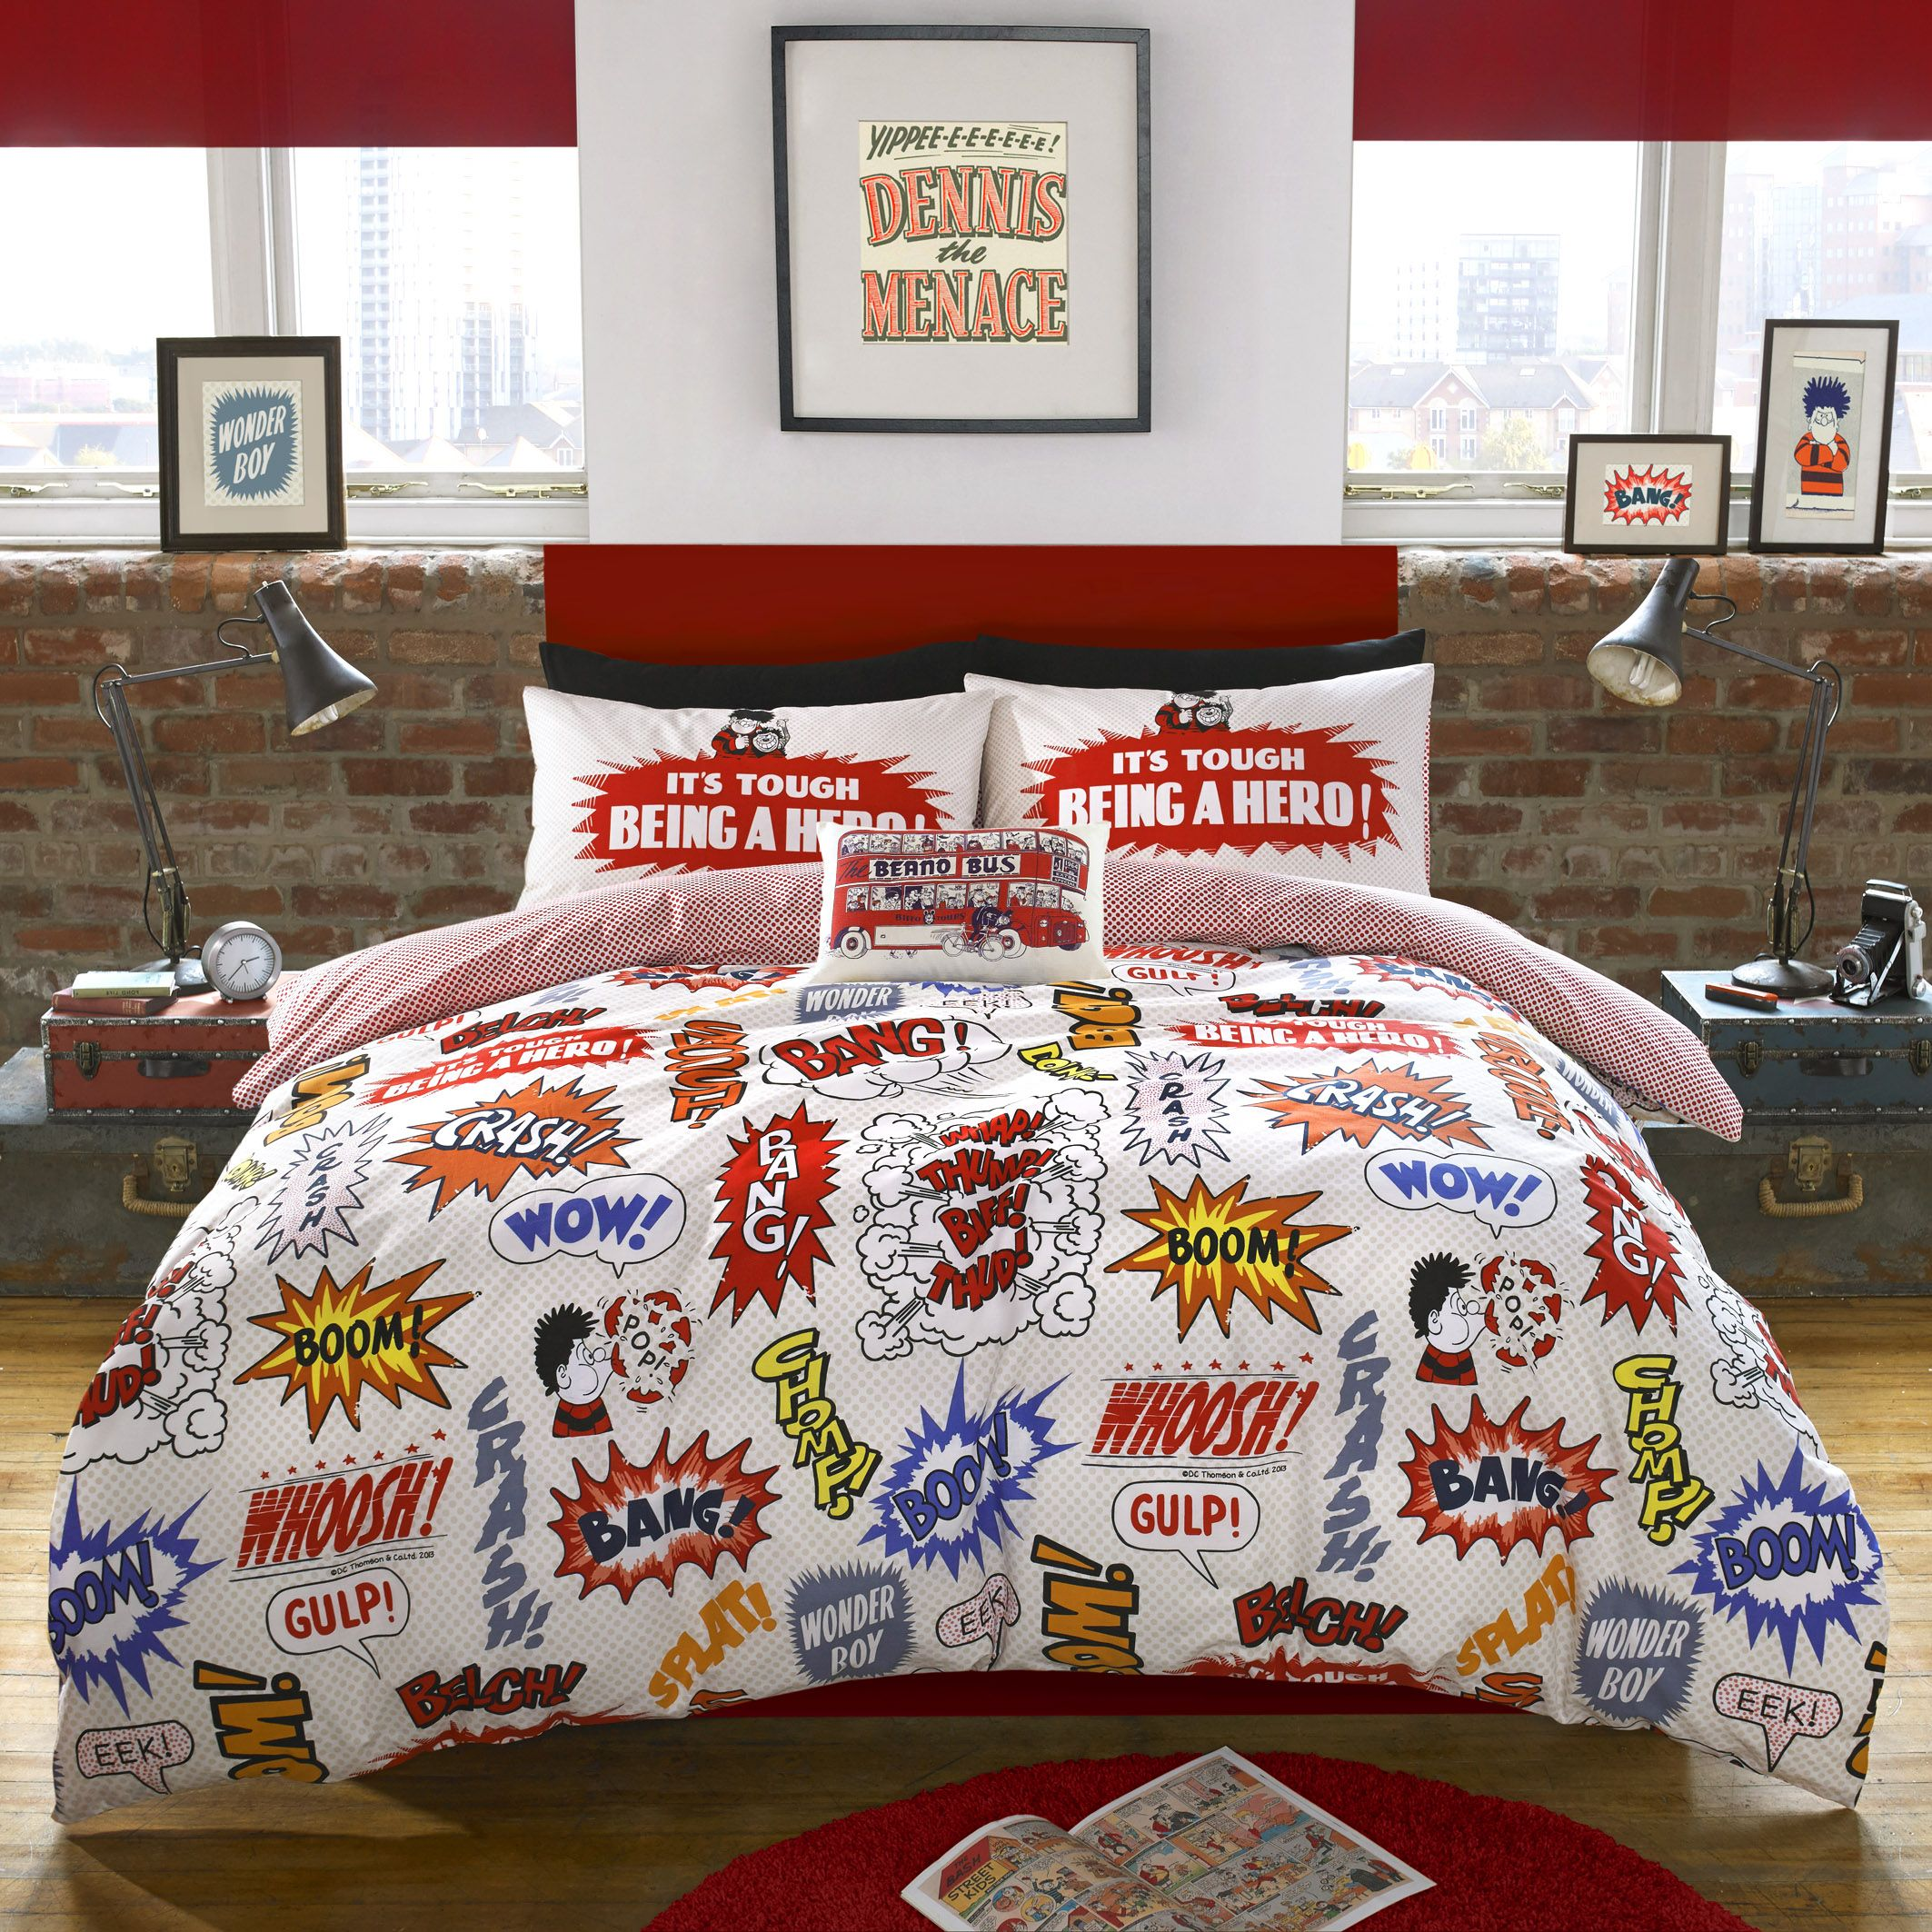 This Beano Crash Boom Duvet Cover Set Features An Array Of Bold Colourful Clic Comic Book Style Sch Bubbles And Shapes To Give It The Wow Factor